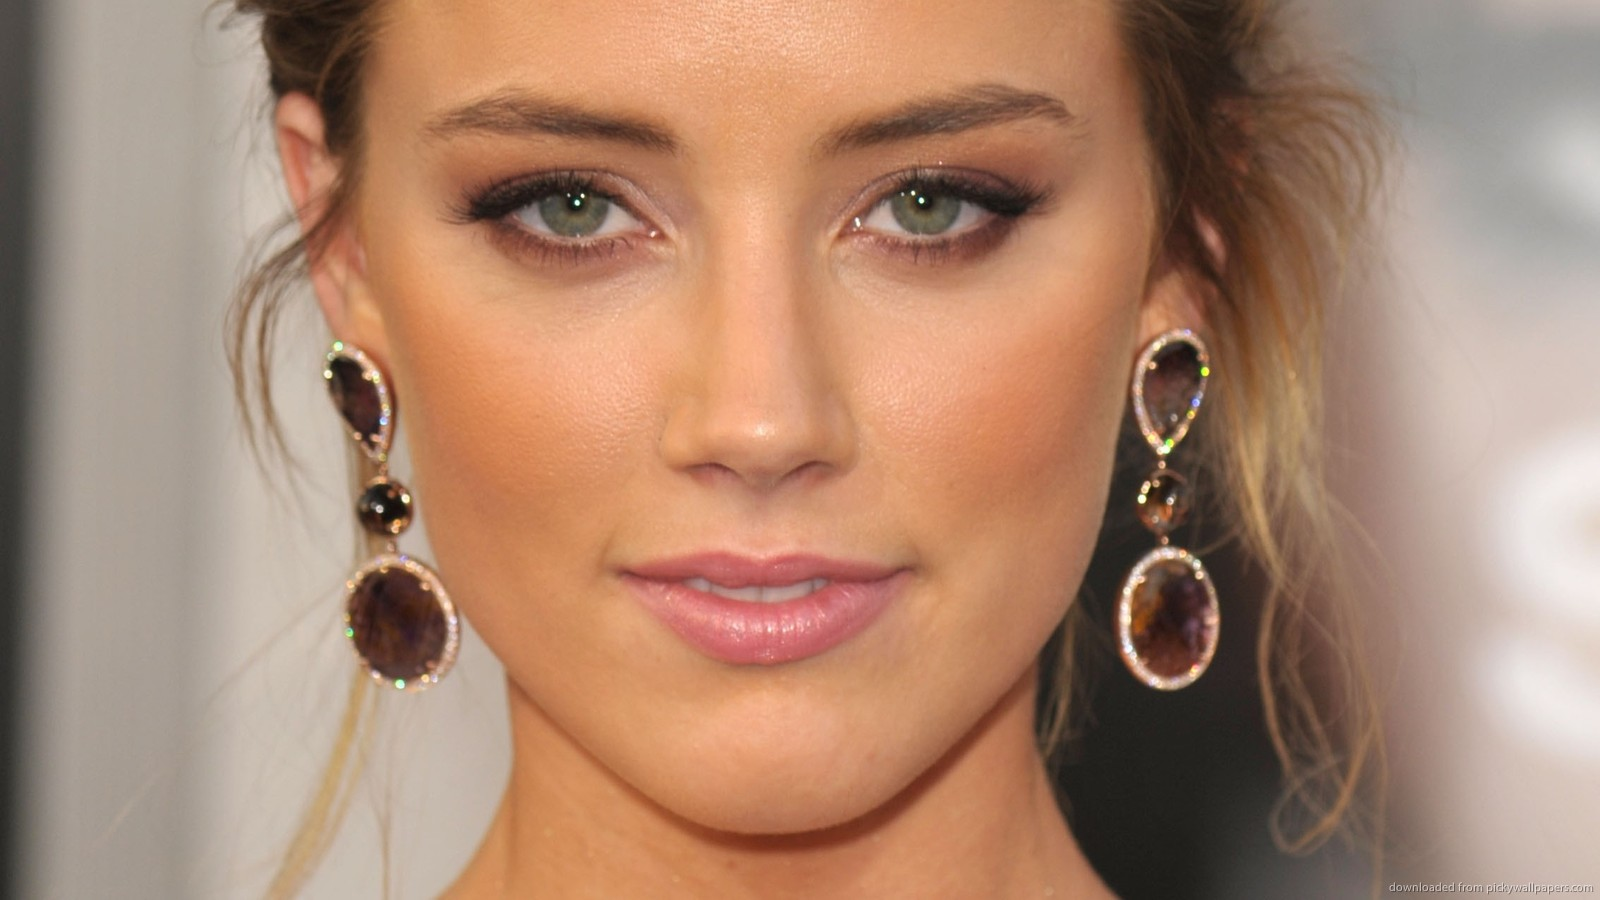 Apple Iphone X Wallpaper Hd Amber Heard Face Photos Full Hd Pictures